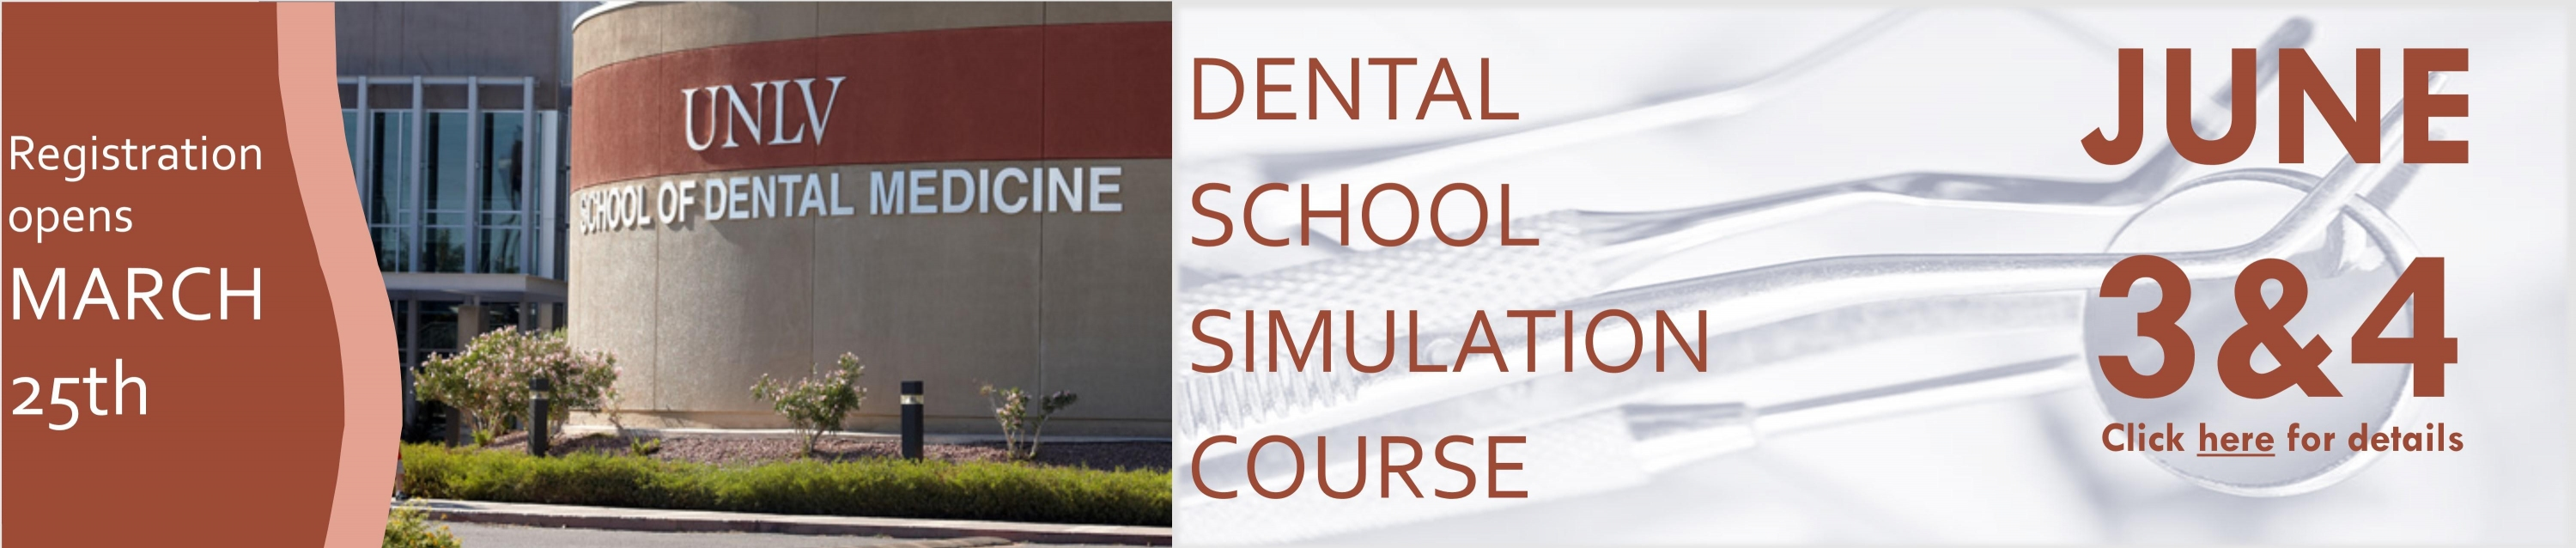 Dental School Simulation Course